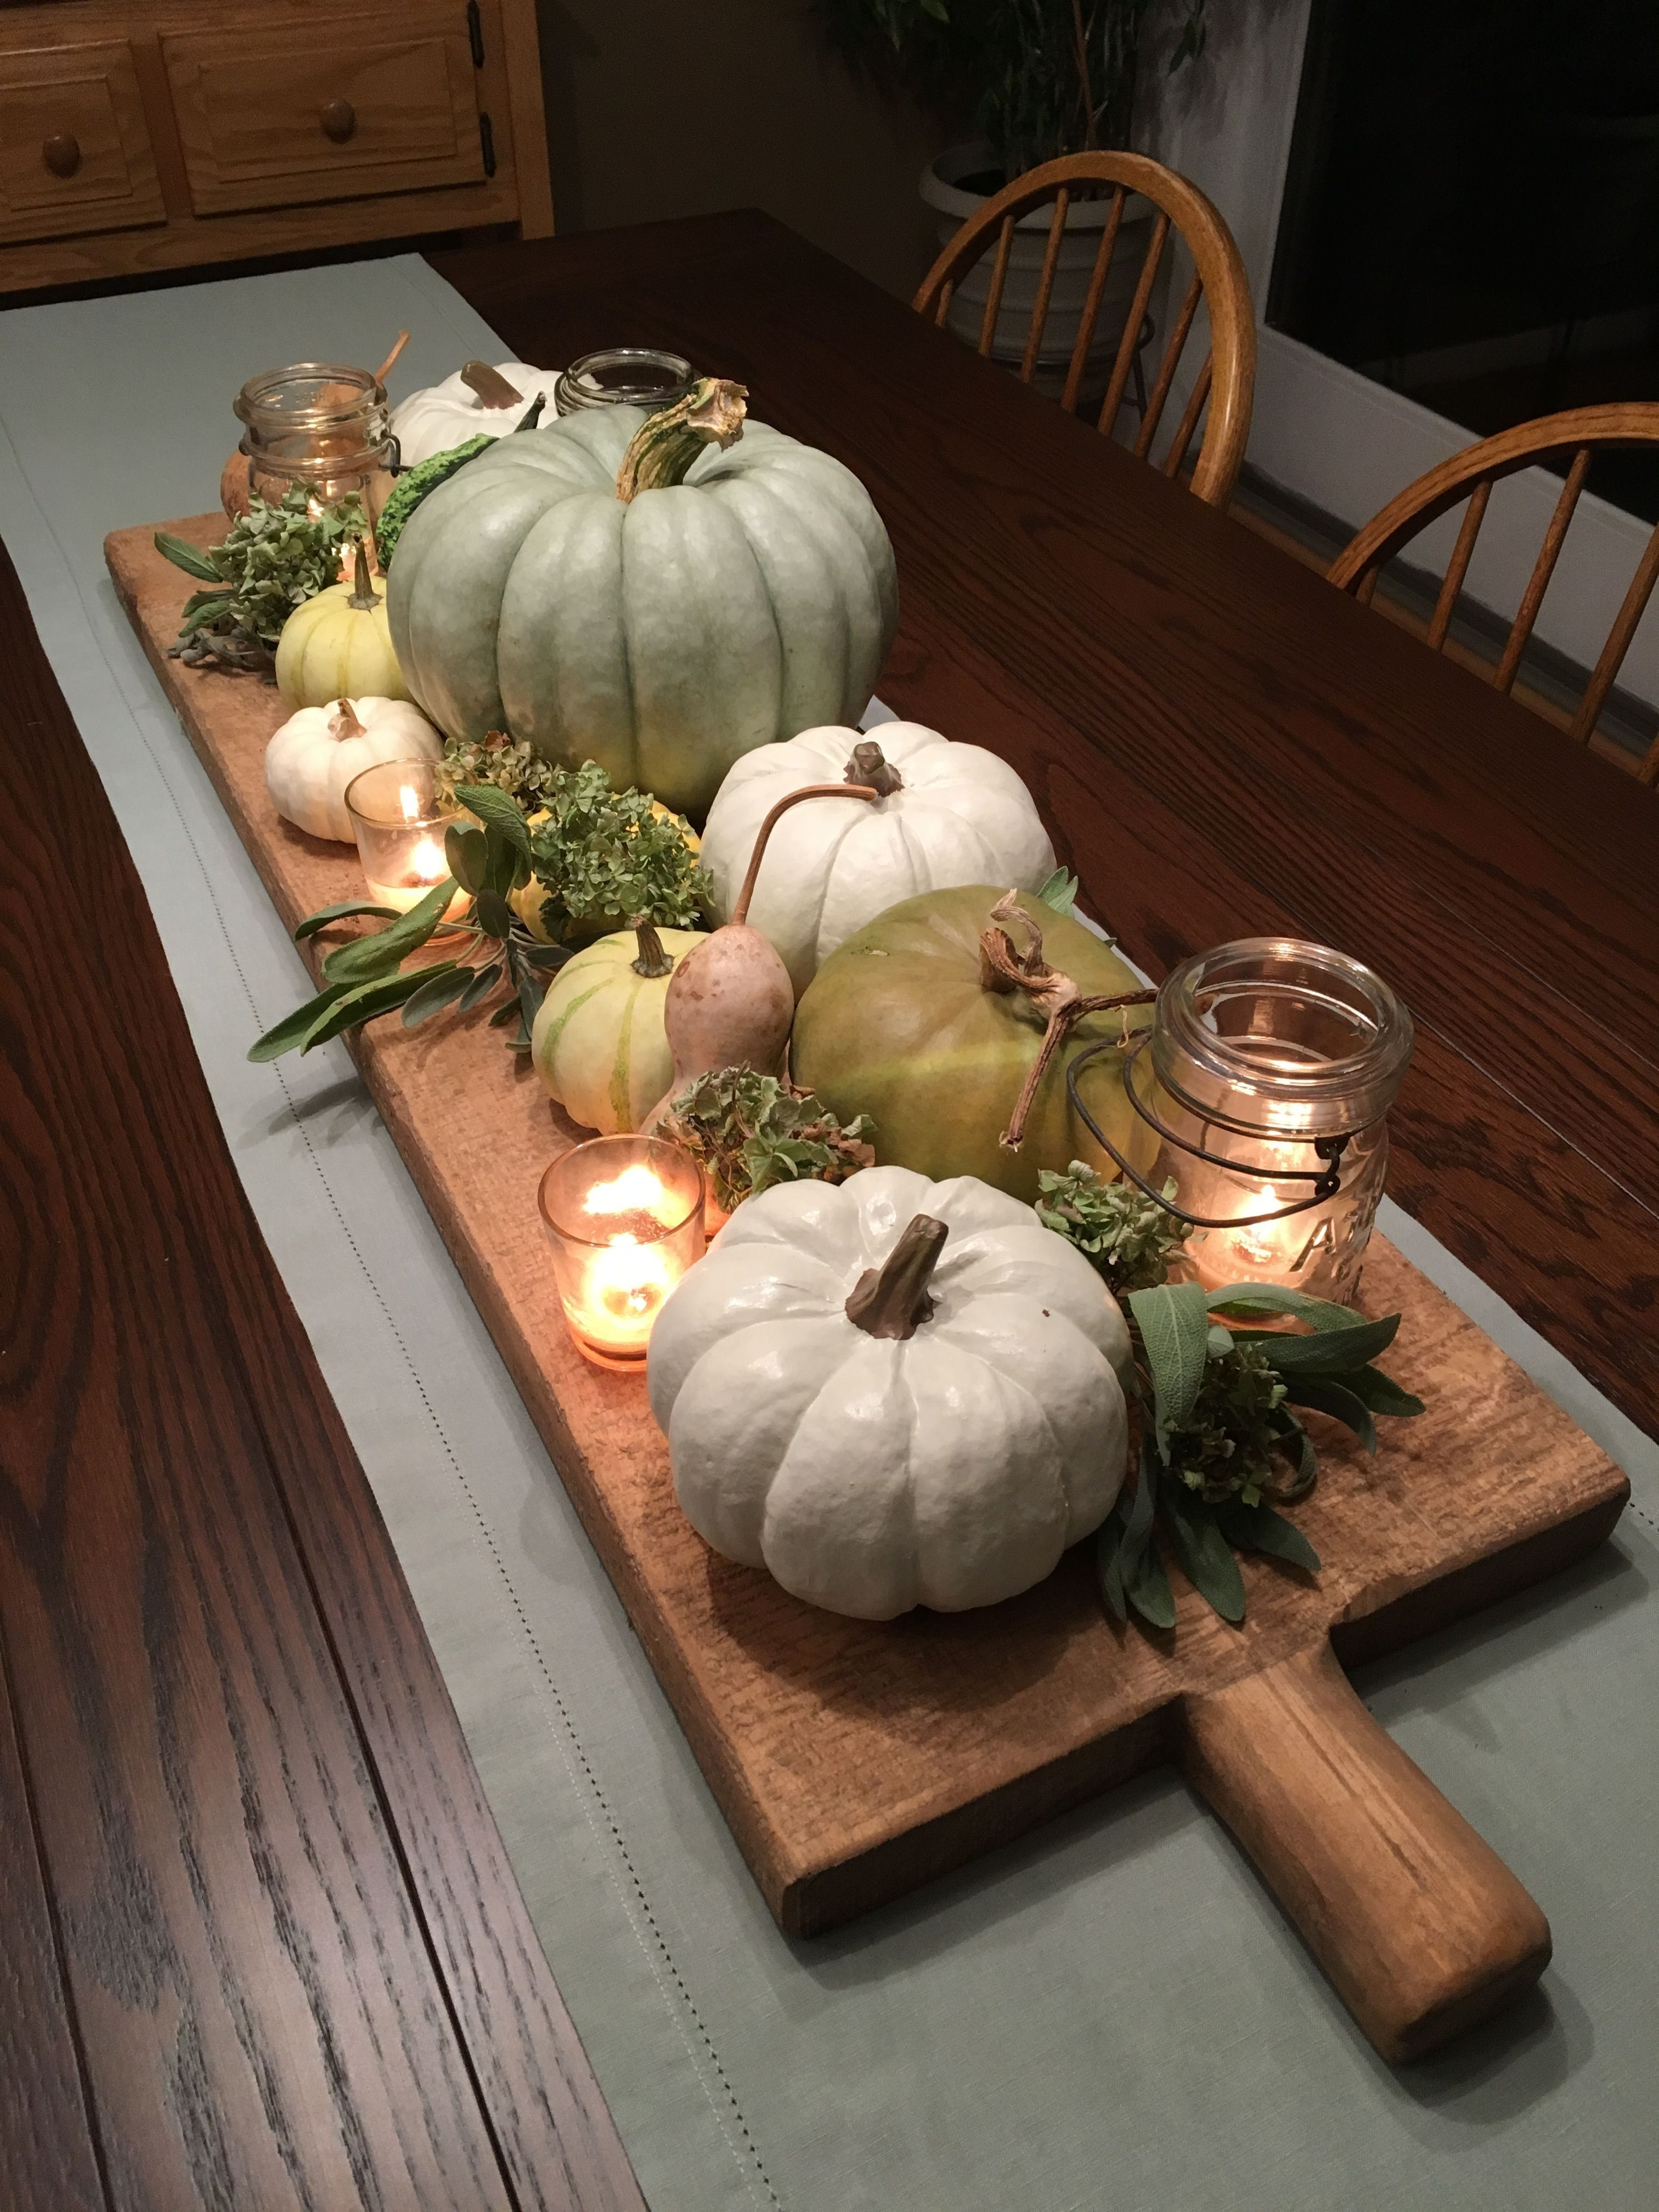 40 Most Amazing Farmhouse Table Centrepiece Design Ideas images